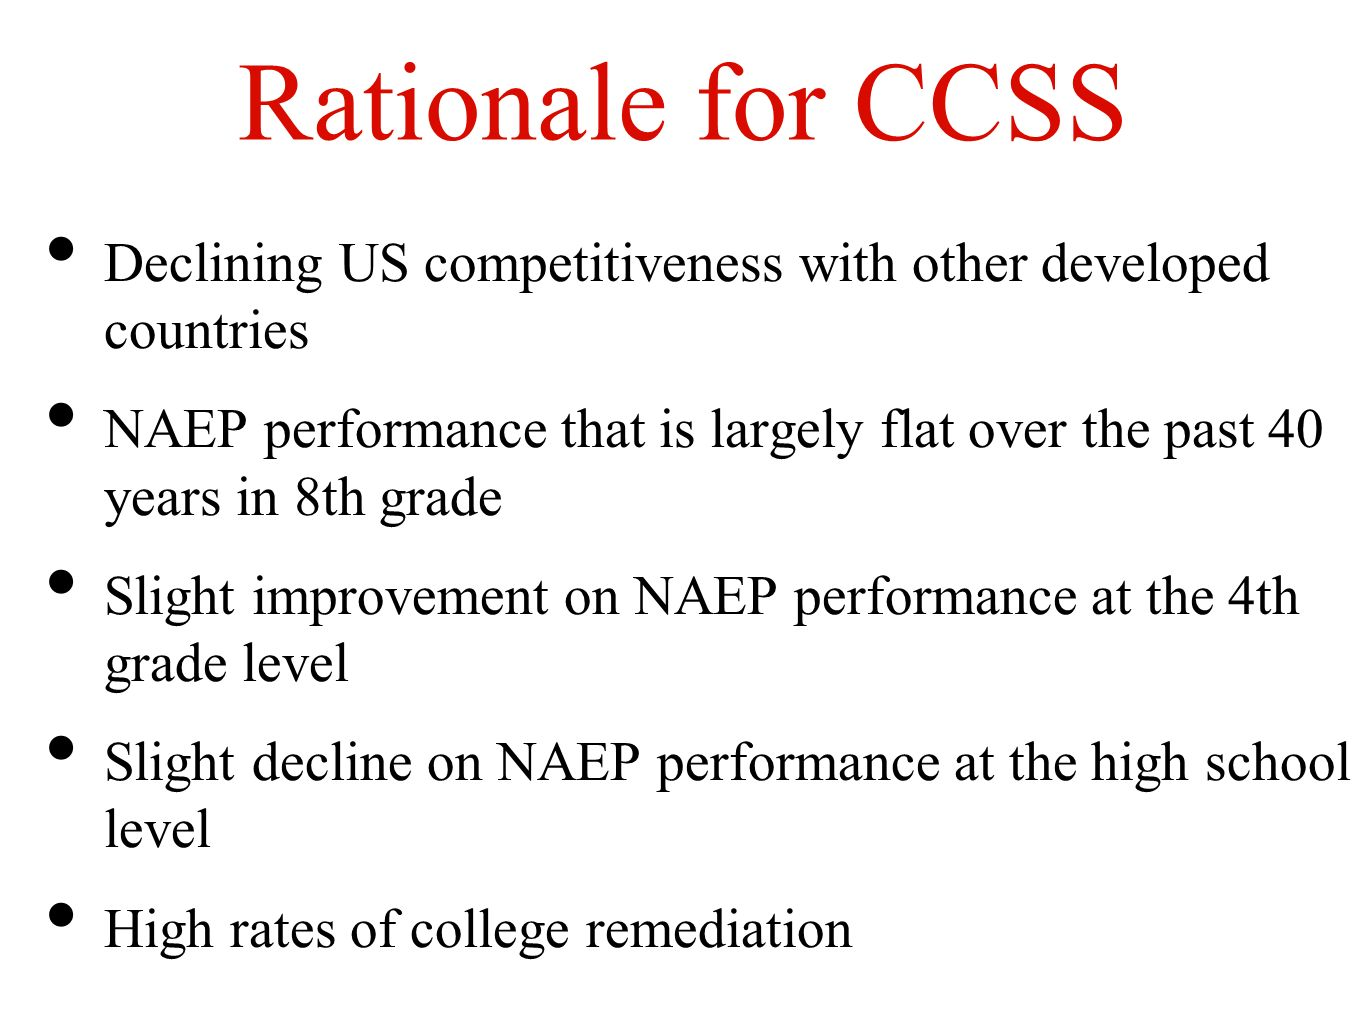 Rationale for CCSS Declining US competitiveness with other developed countries.